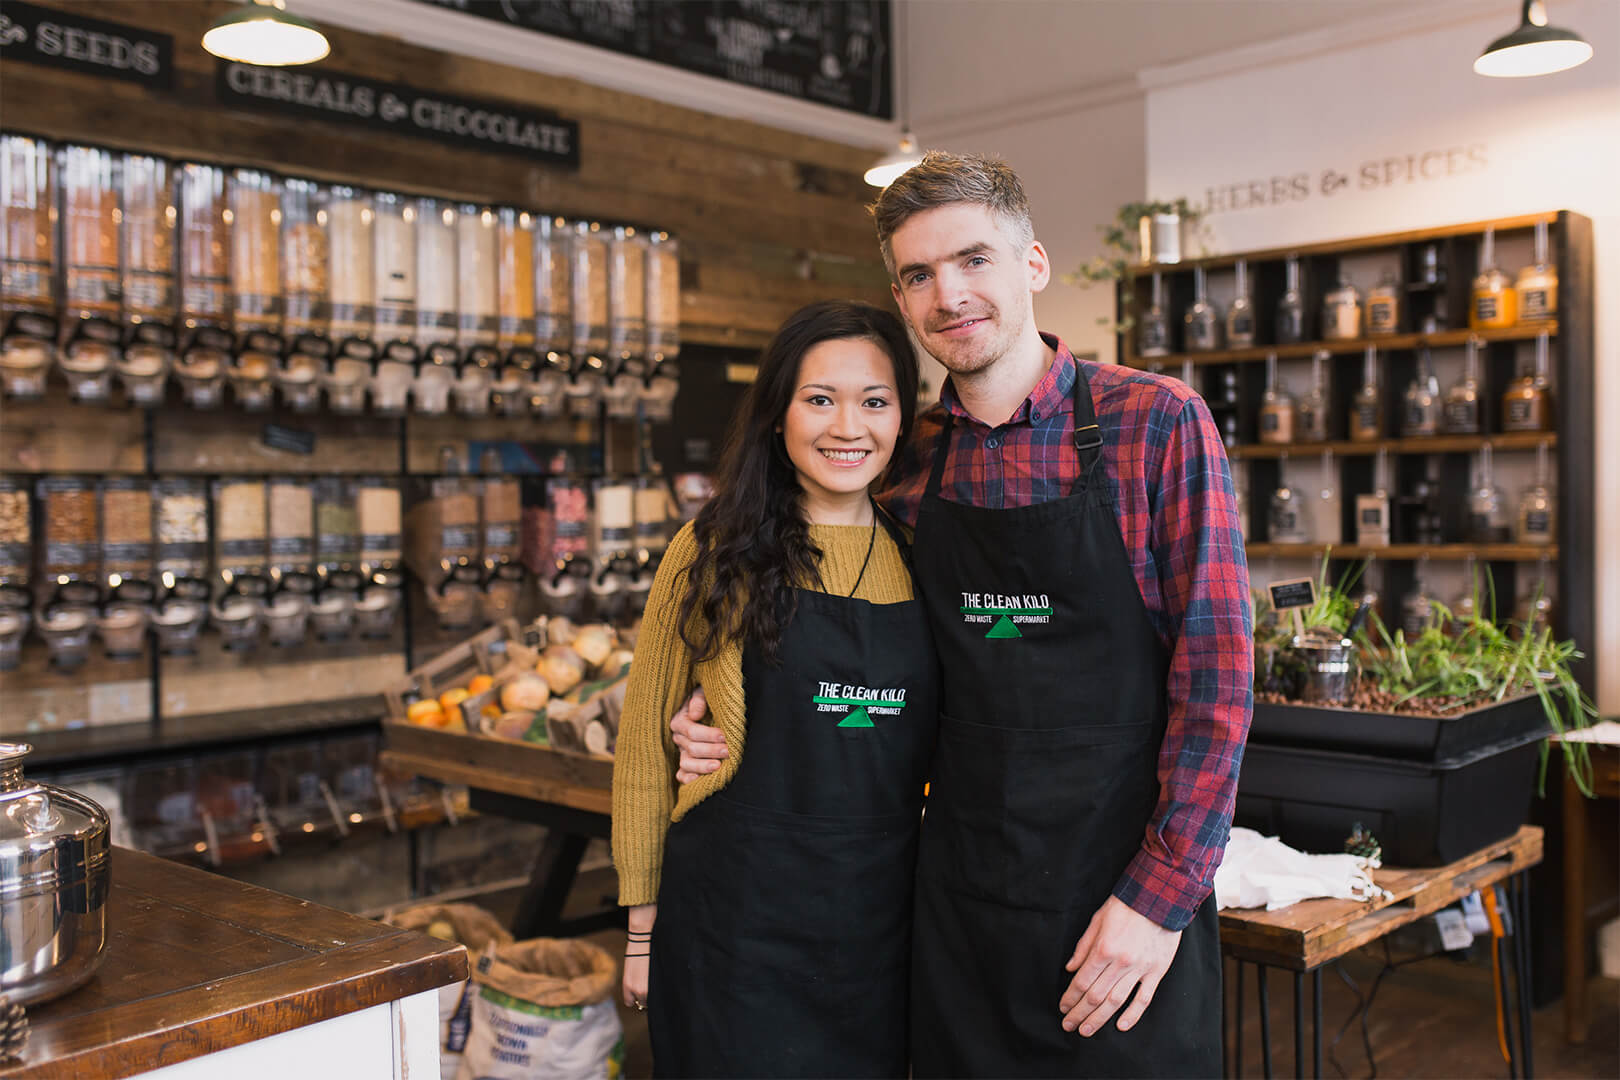 Co-founders of The Clean Kilo Jeanette Wong and Tom Pell